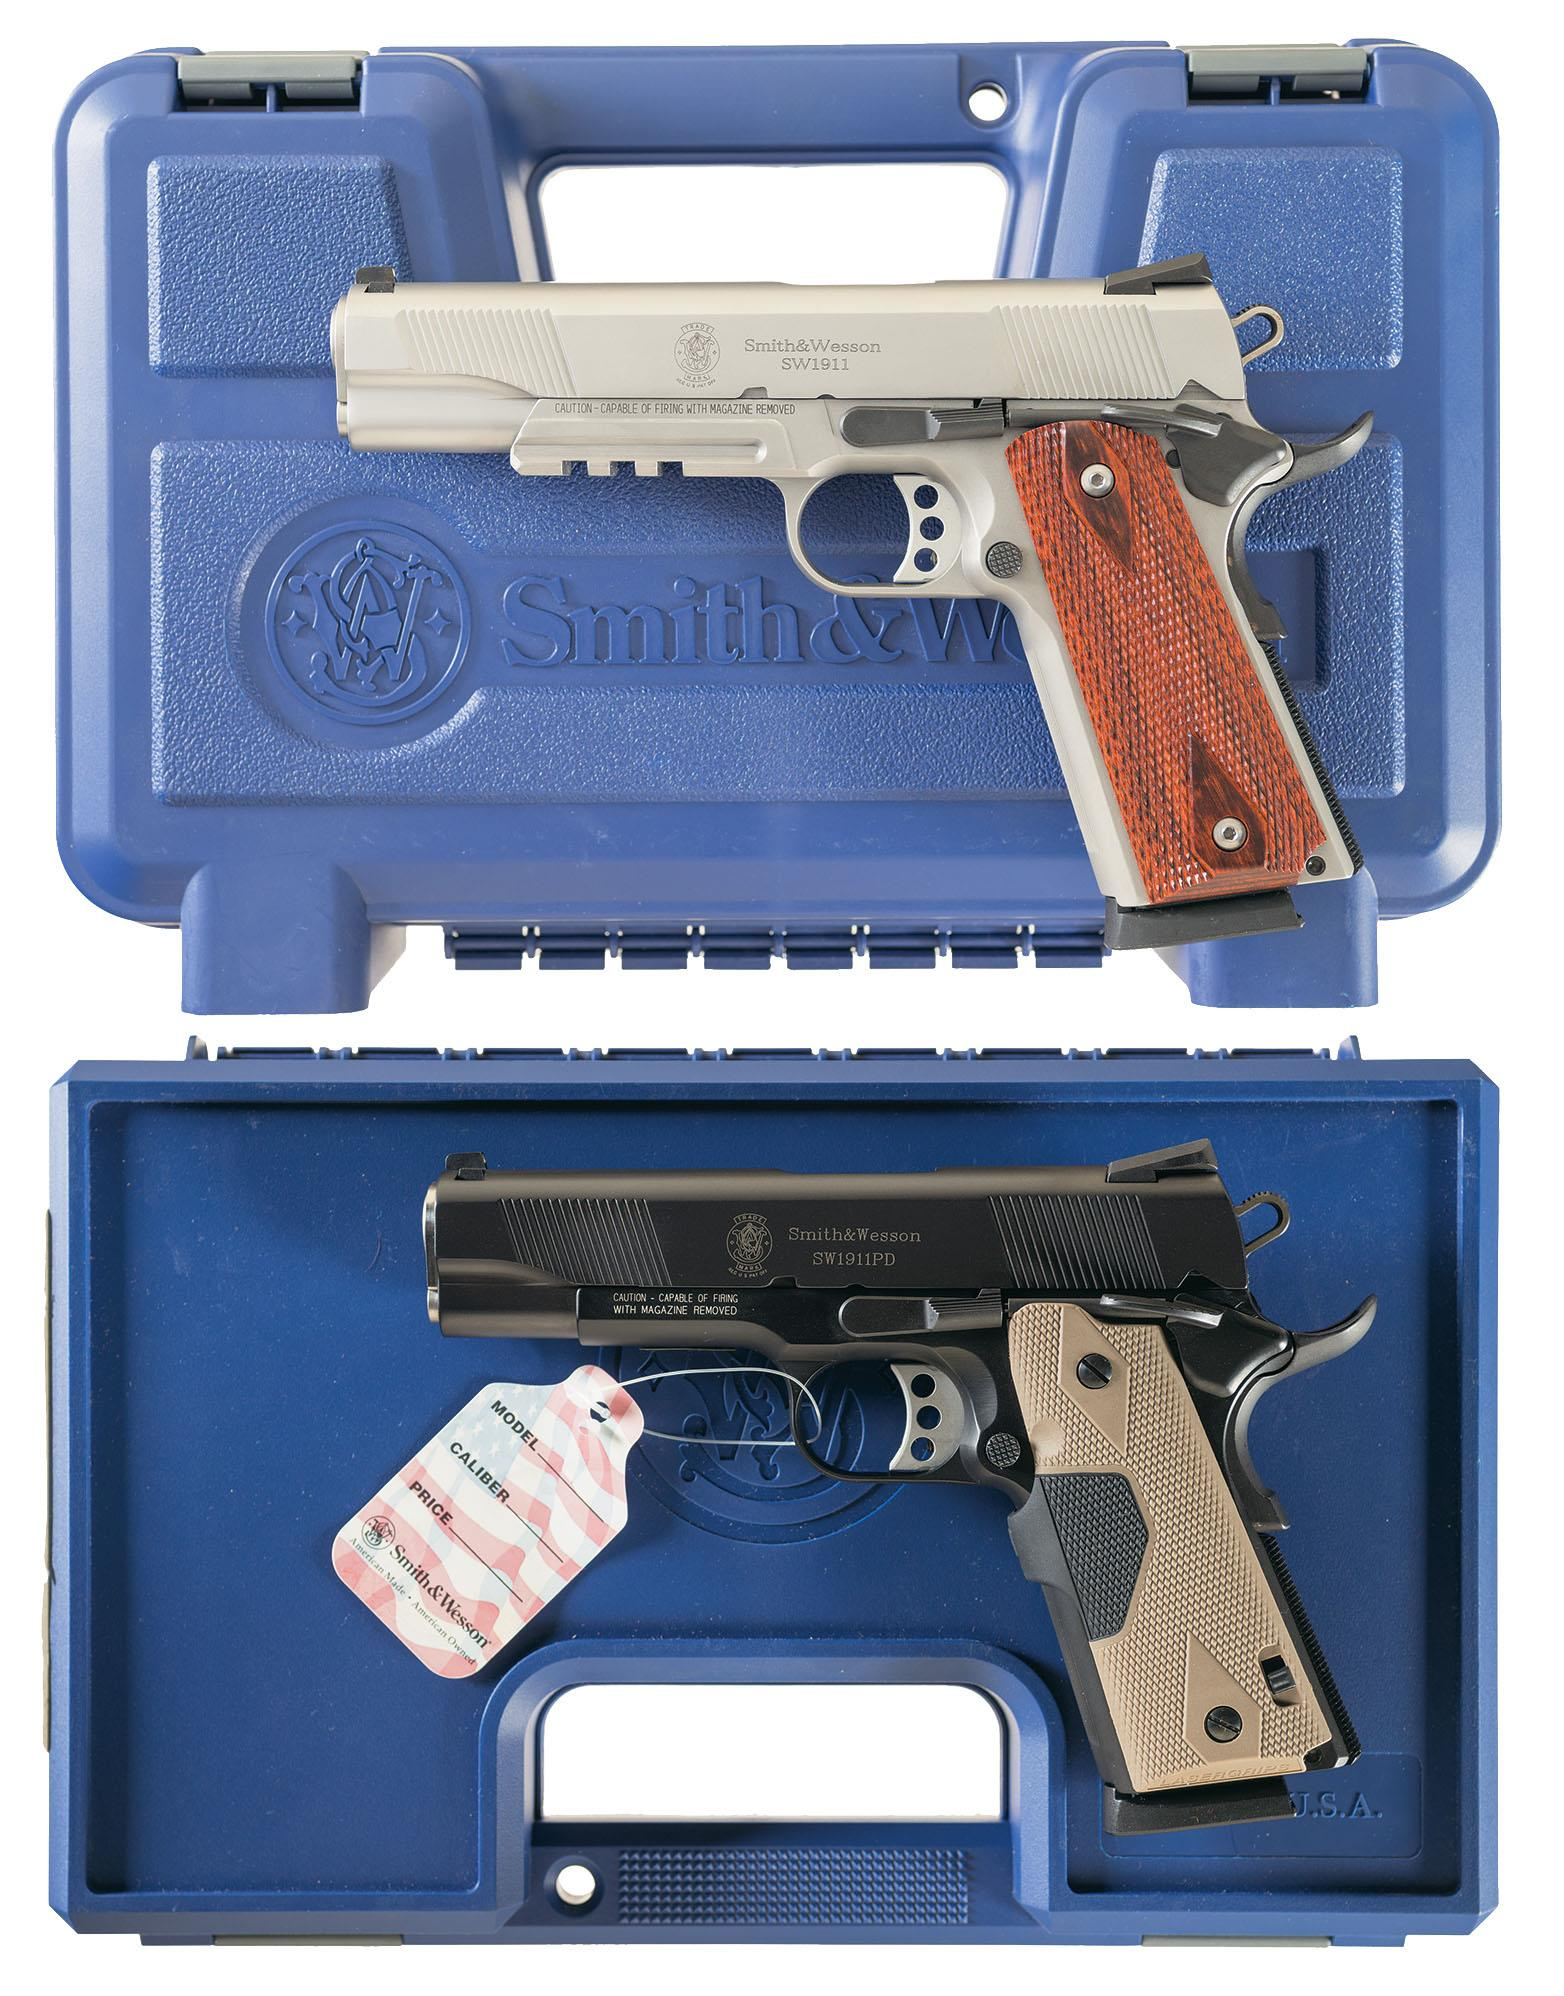 Smith & Wesson - 1911